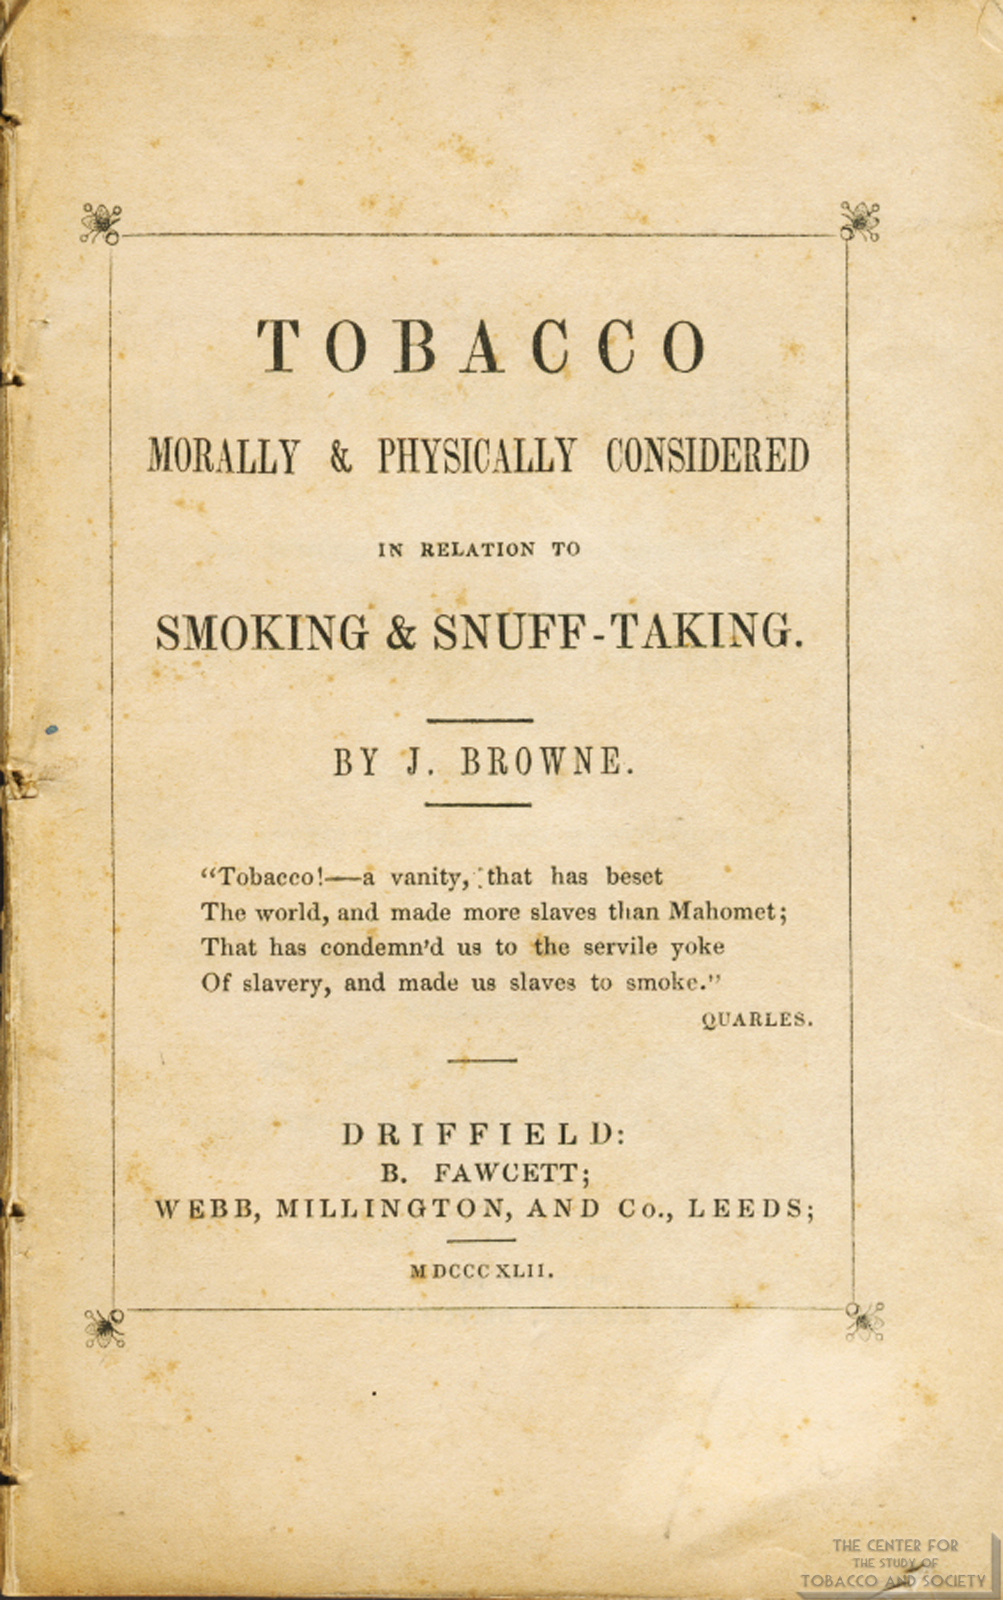 1842 Tobacco Morally Physically Considered